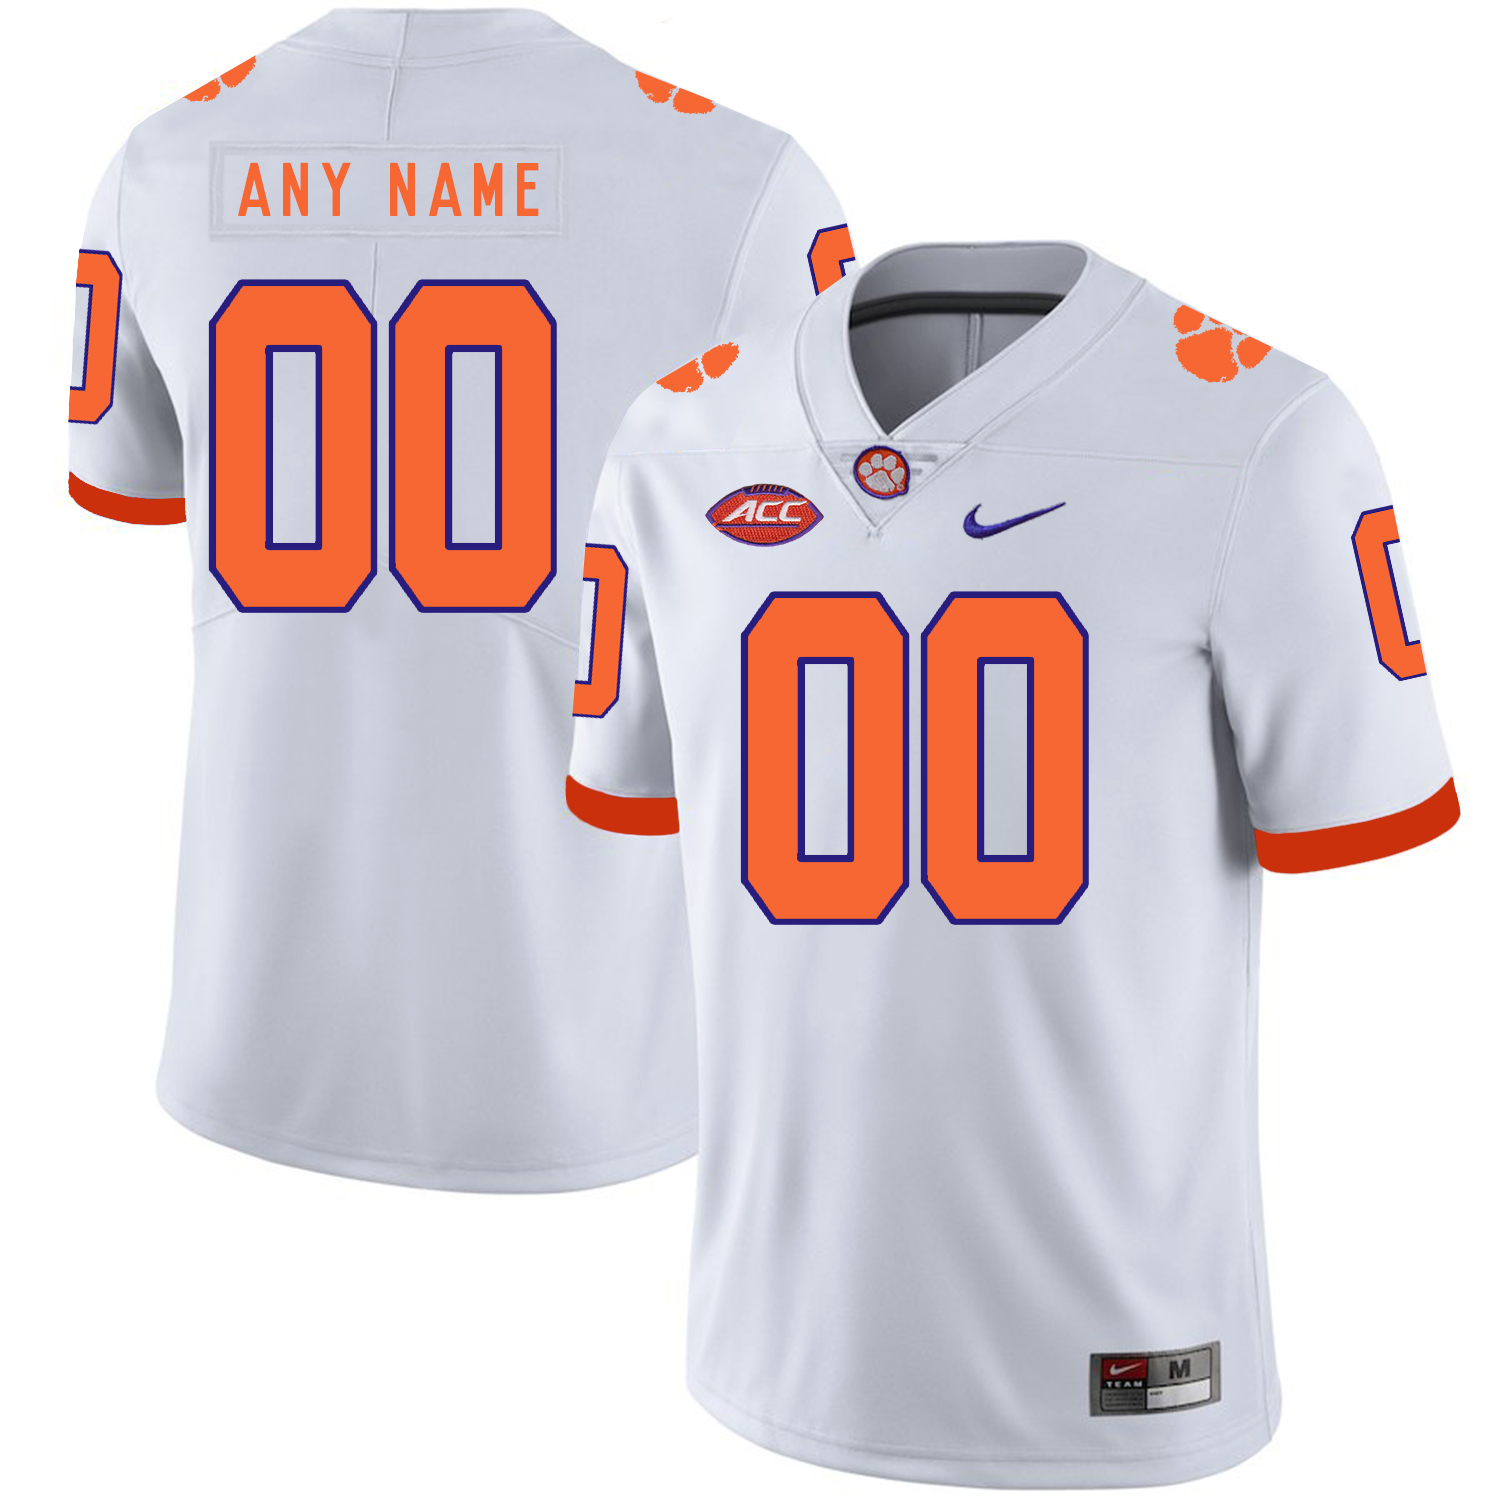 Clemson Tigers White Men's Customized Nike College Football Jersey